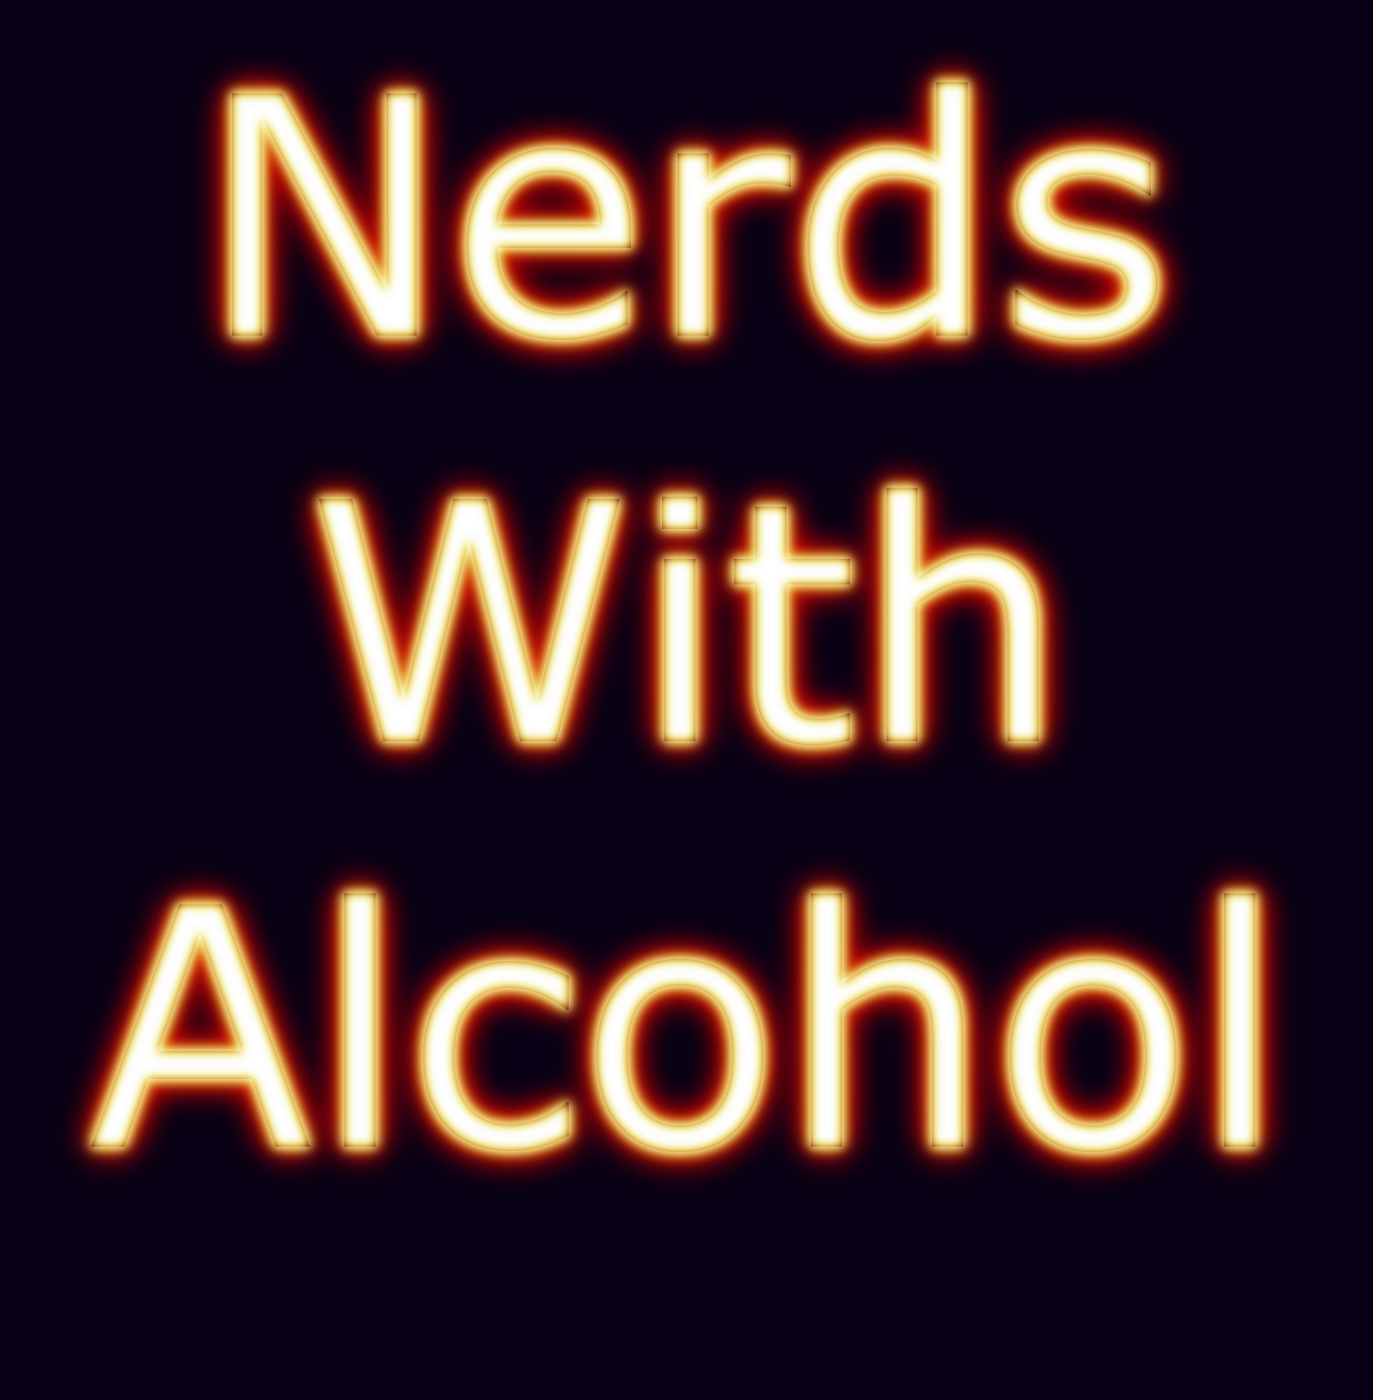 Nerds With Alcohol Show show art